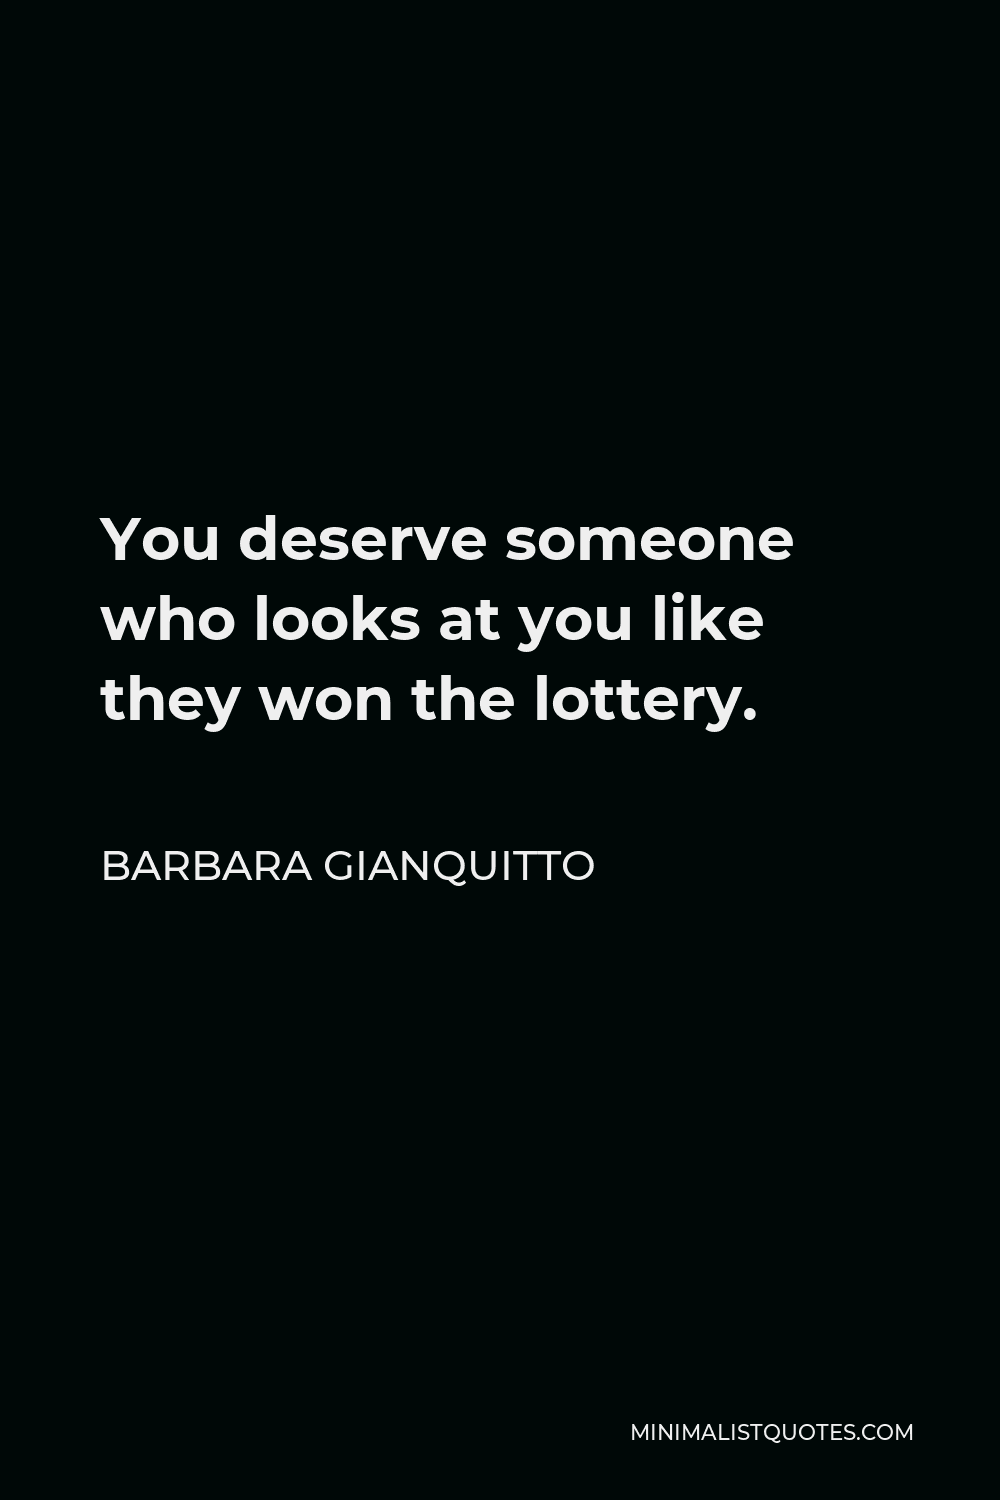 Barbara Gianquitto Quote - You deserve someone who looks at you like they won the lottery.